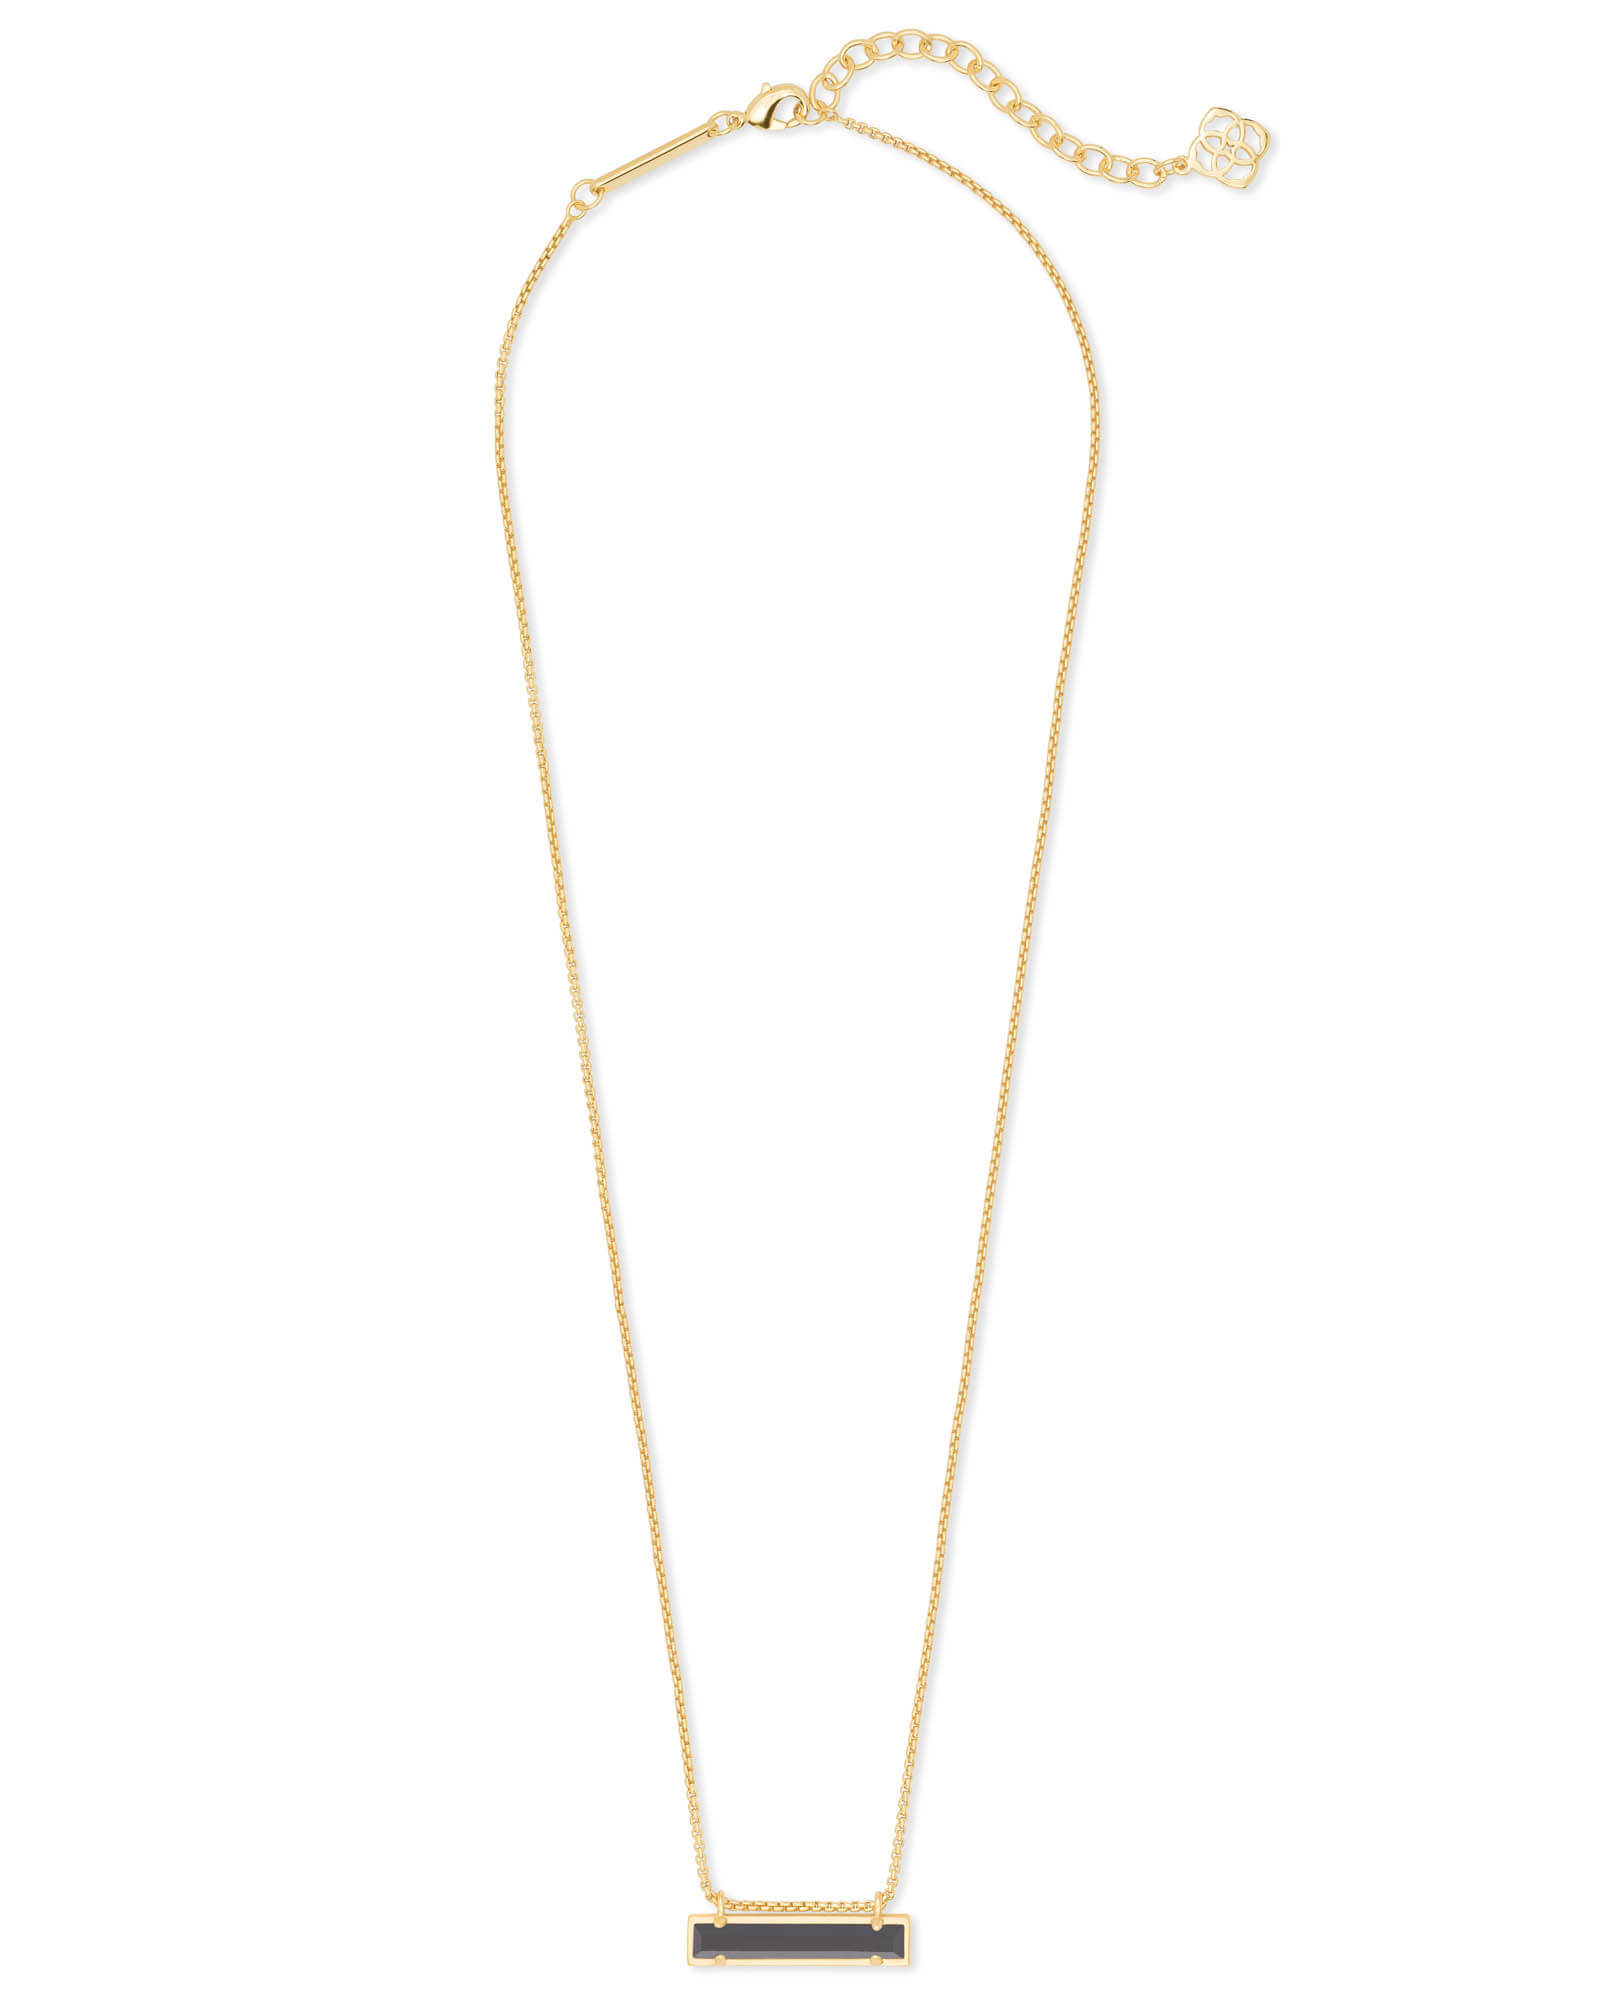 Leanor Gold Pendant Necklace in Black Opaque Glass